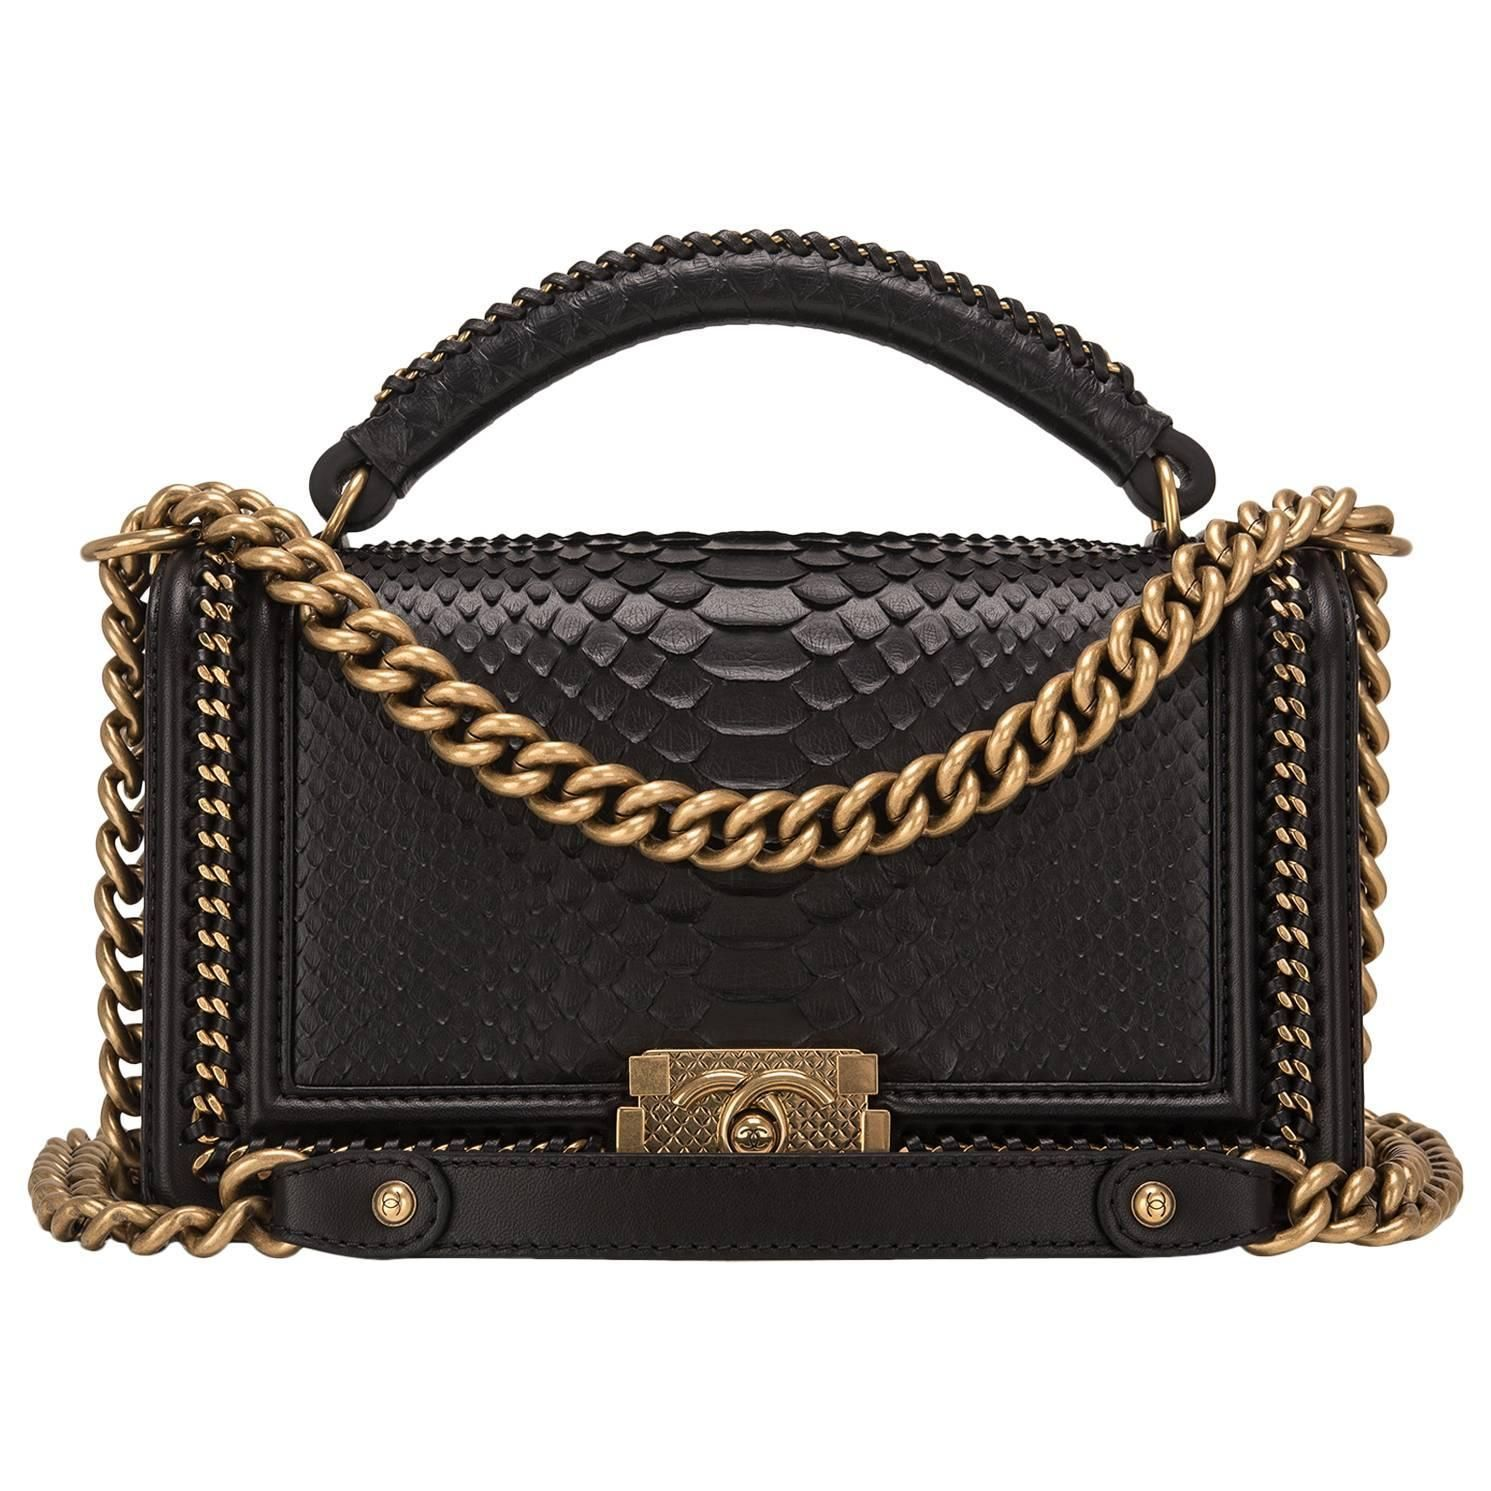 Chanel Black Python Medium Boy Bag with Handle  4224171a77aa5